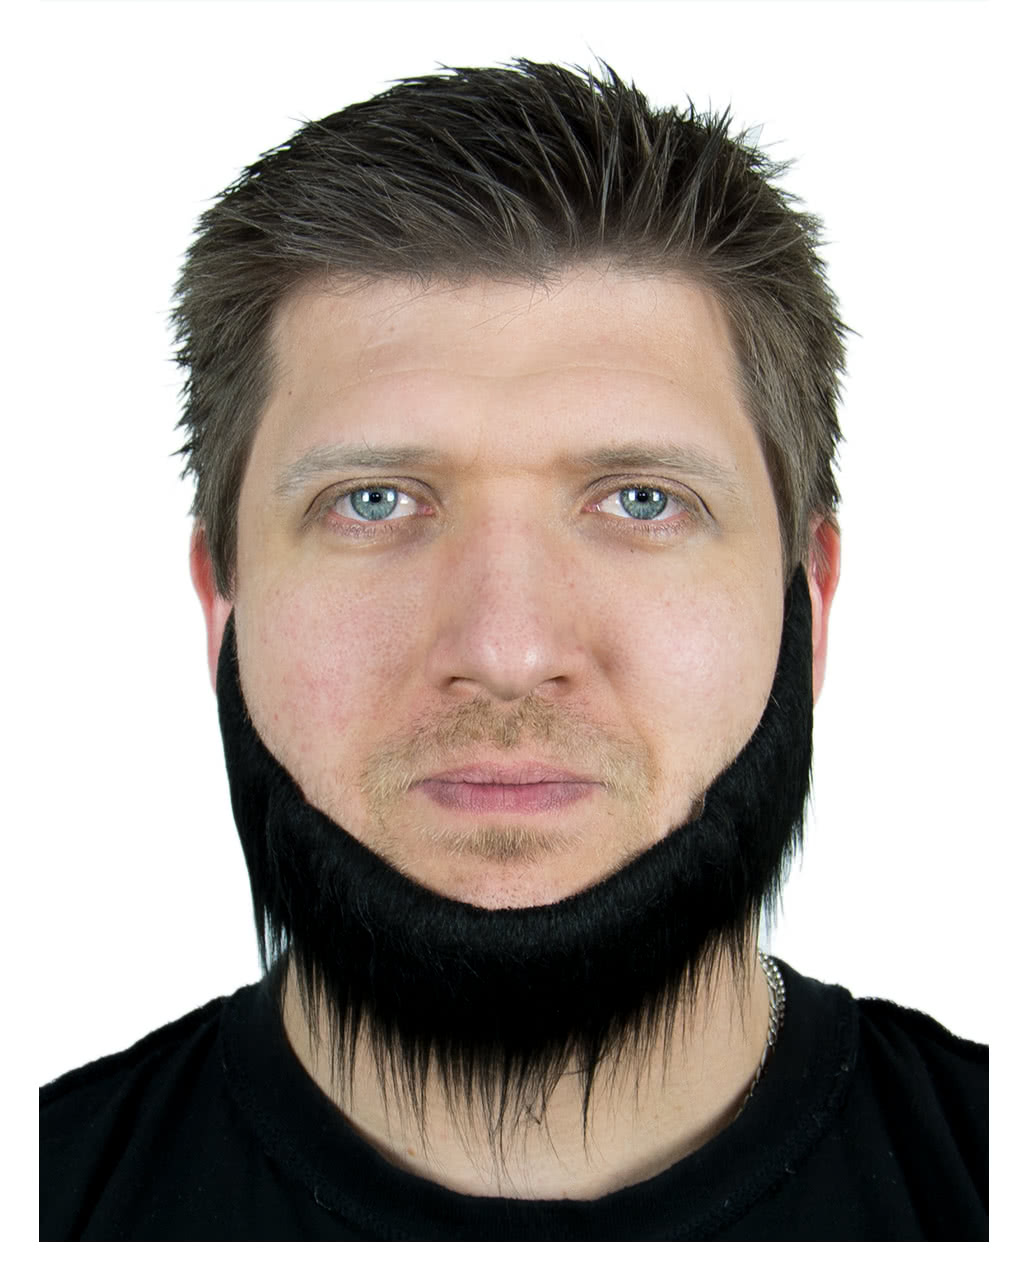 Black Jaw Chin Beard